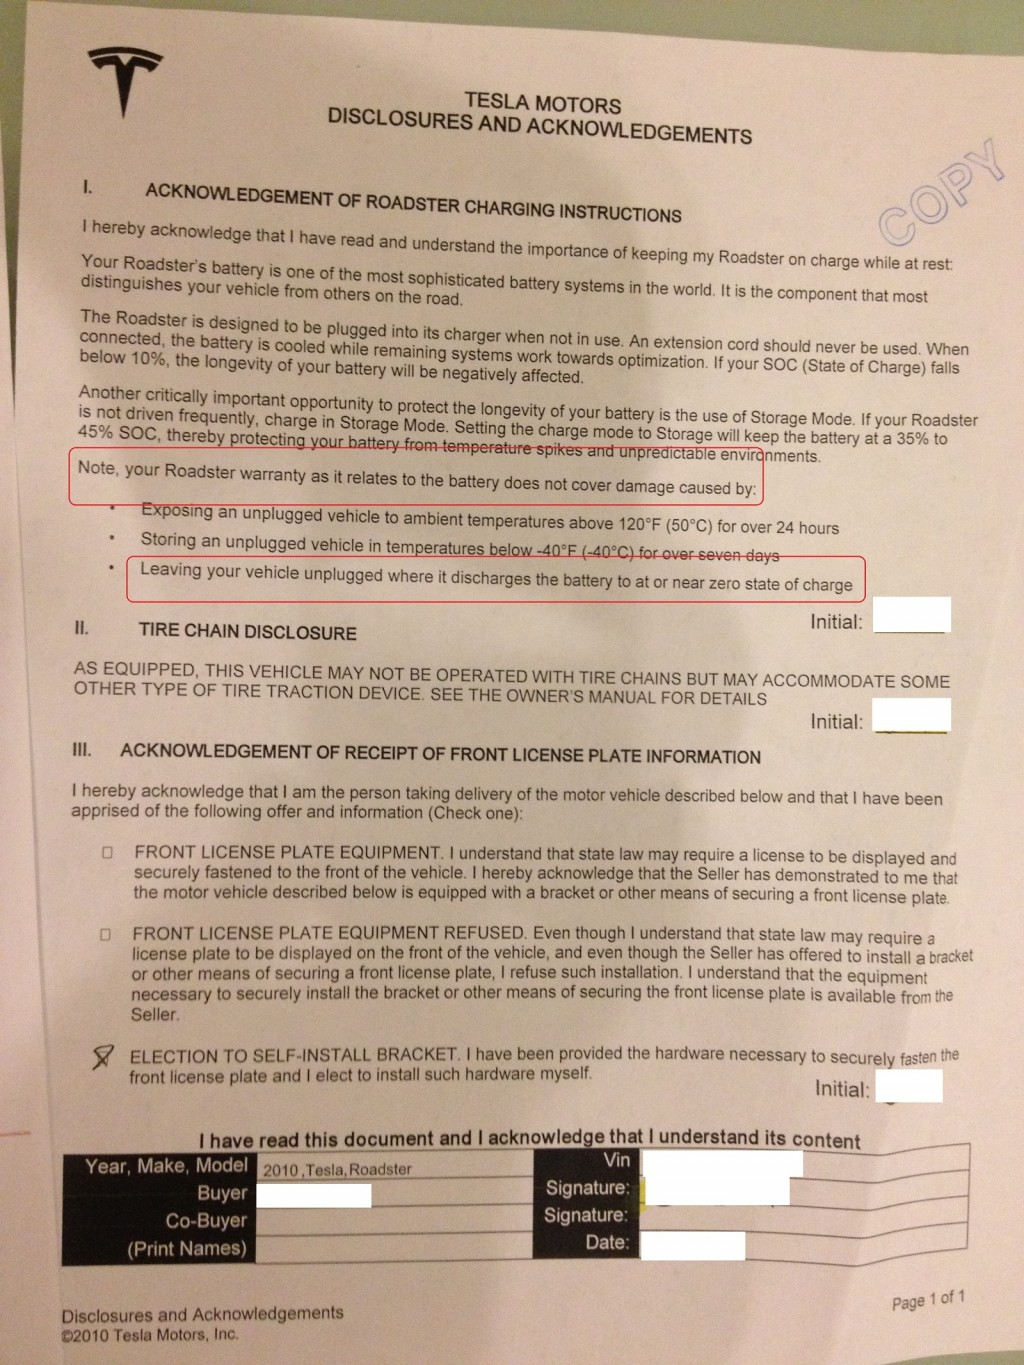 Tesla Roadster 'Acknowledgement of Charging Instructions' document (courtesy Tesla Motors Club)